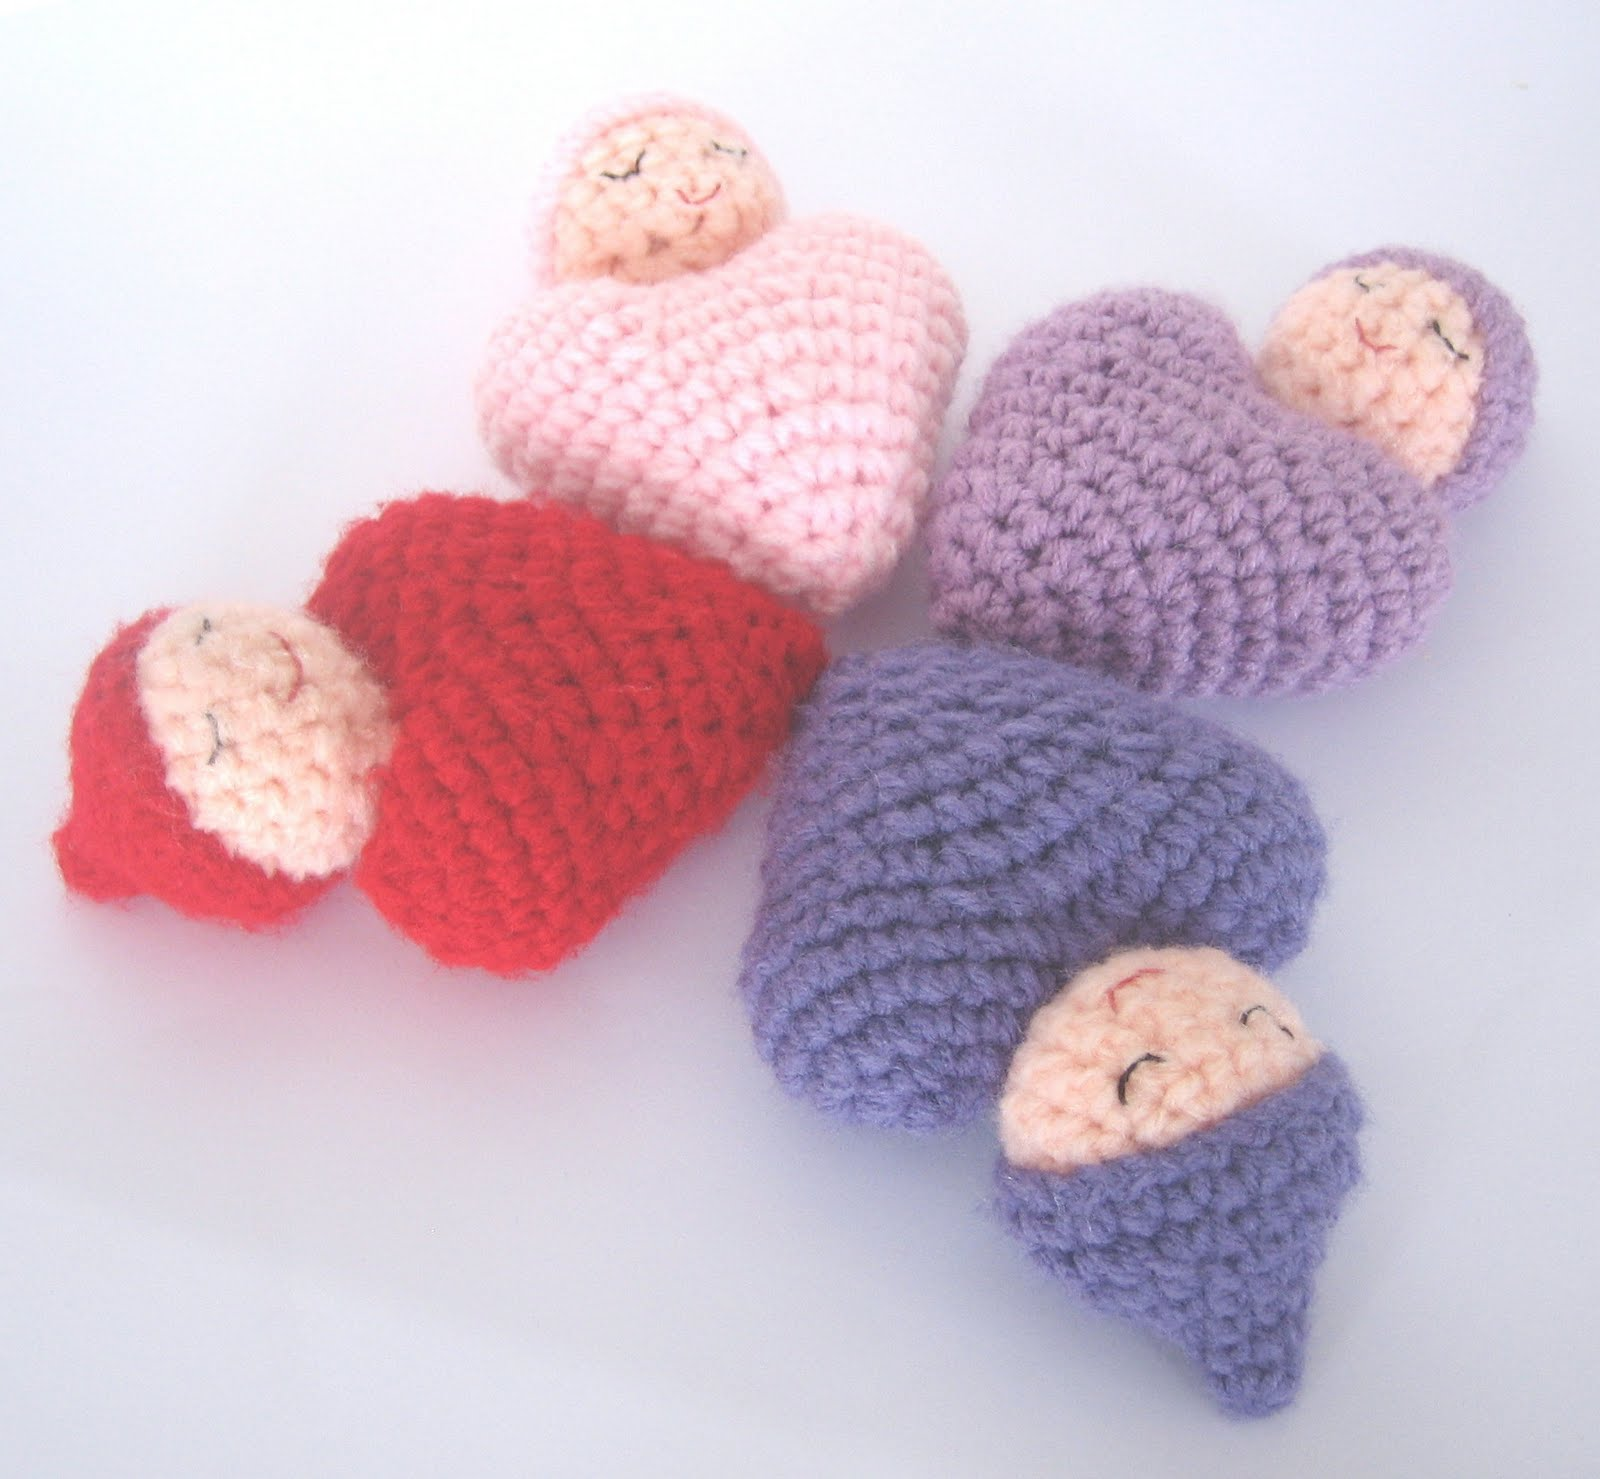 FREE CROCHET HEART PATTERNS - Crochet and Knitting Patterns